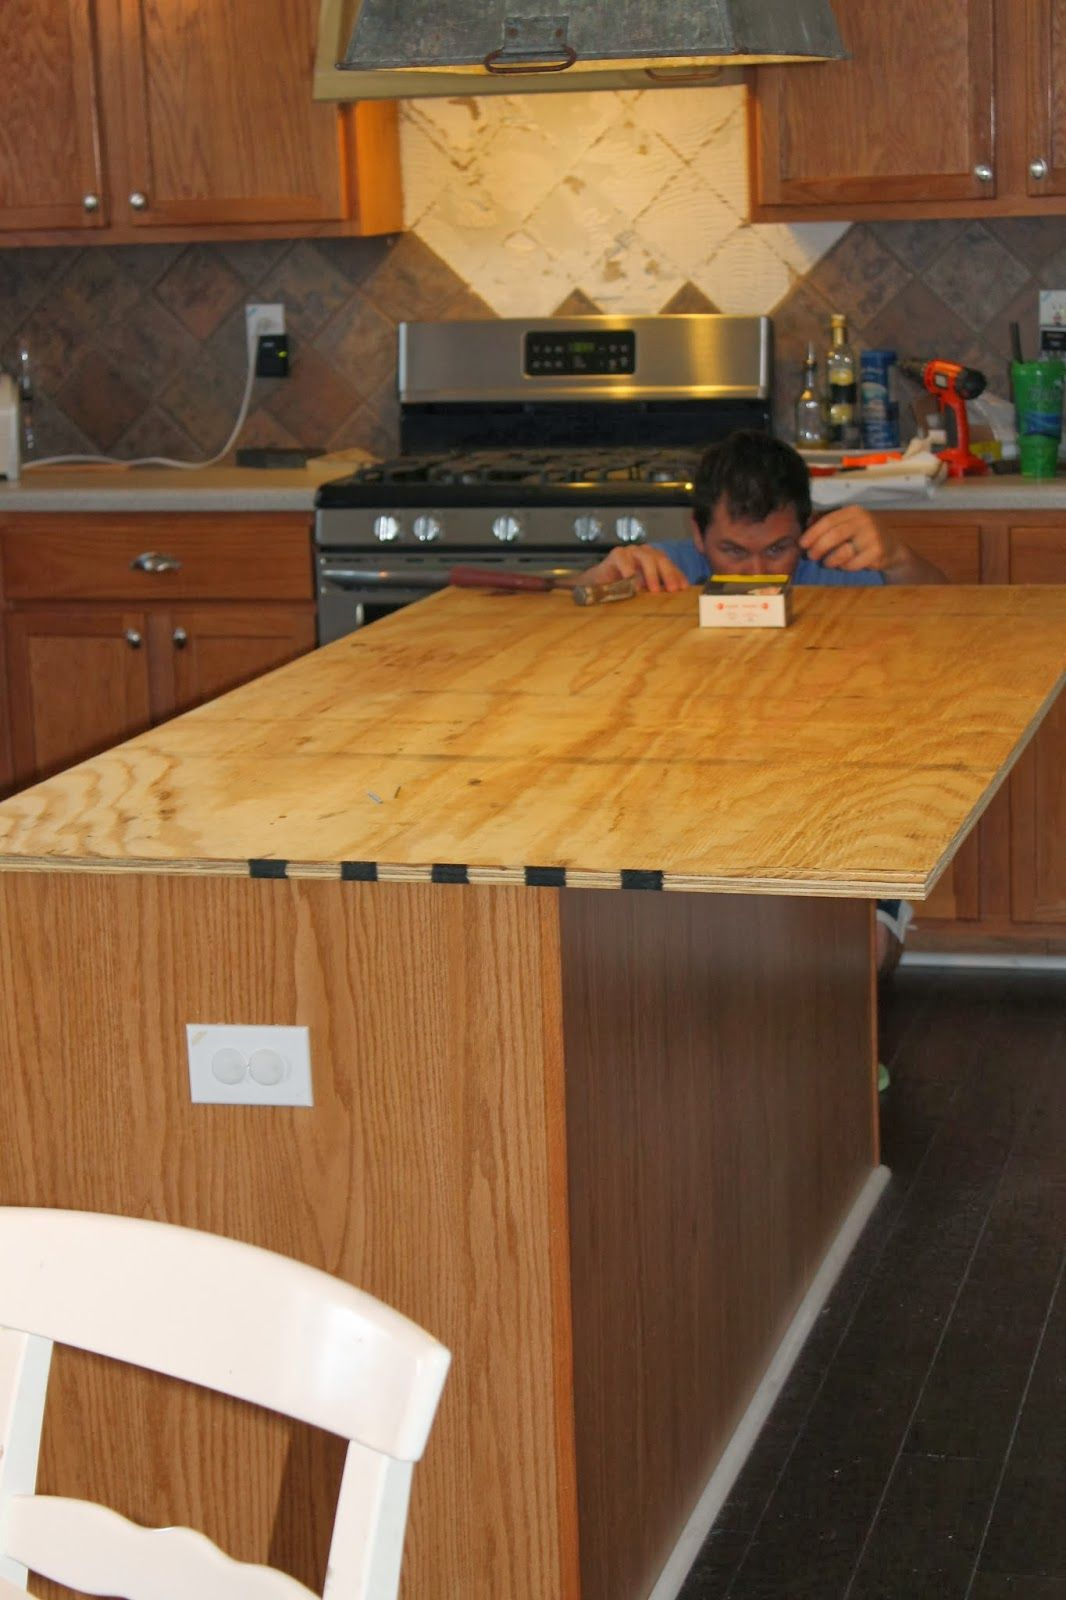 install kitchen island How to Create Faux Reclaimed Wood Countertops Reclaimed Wood KitchenReclaimed Wood Island